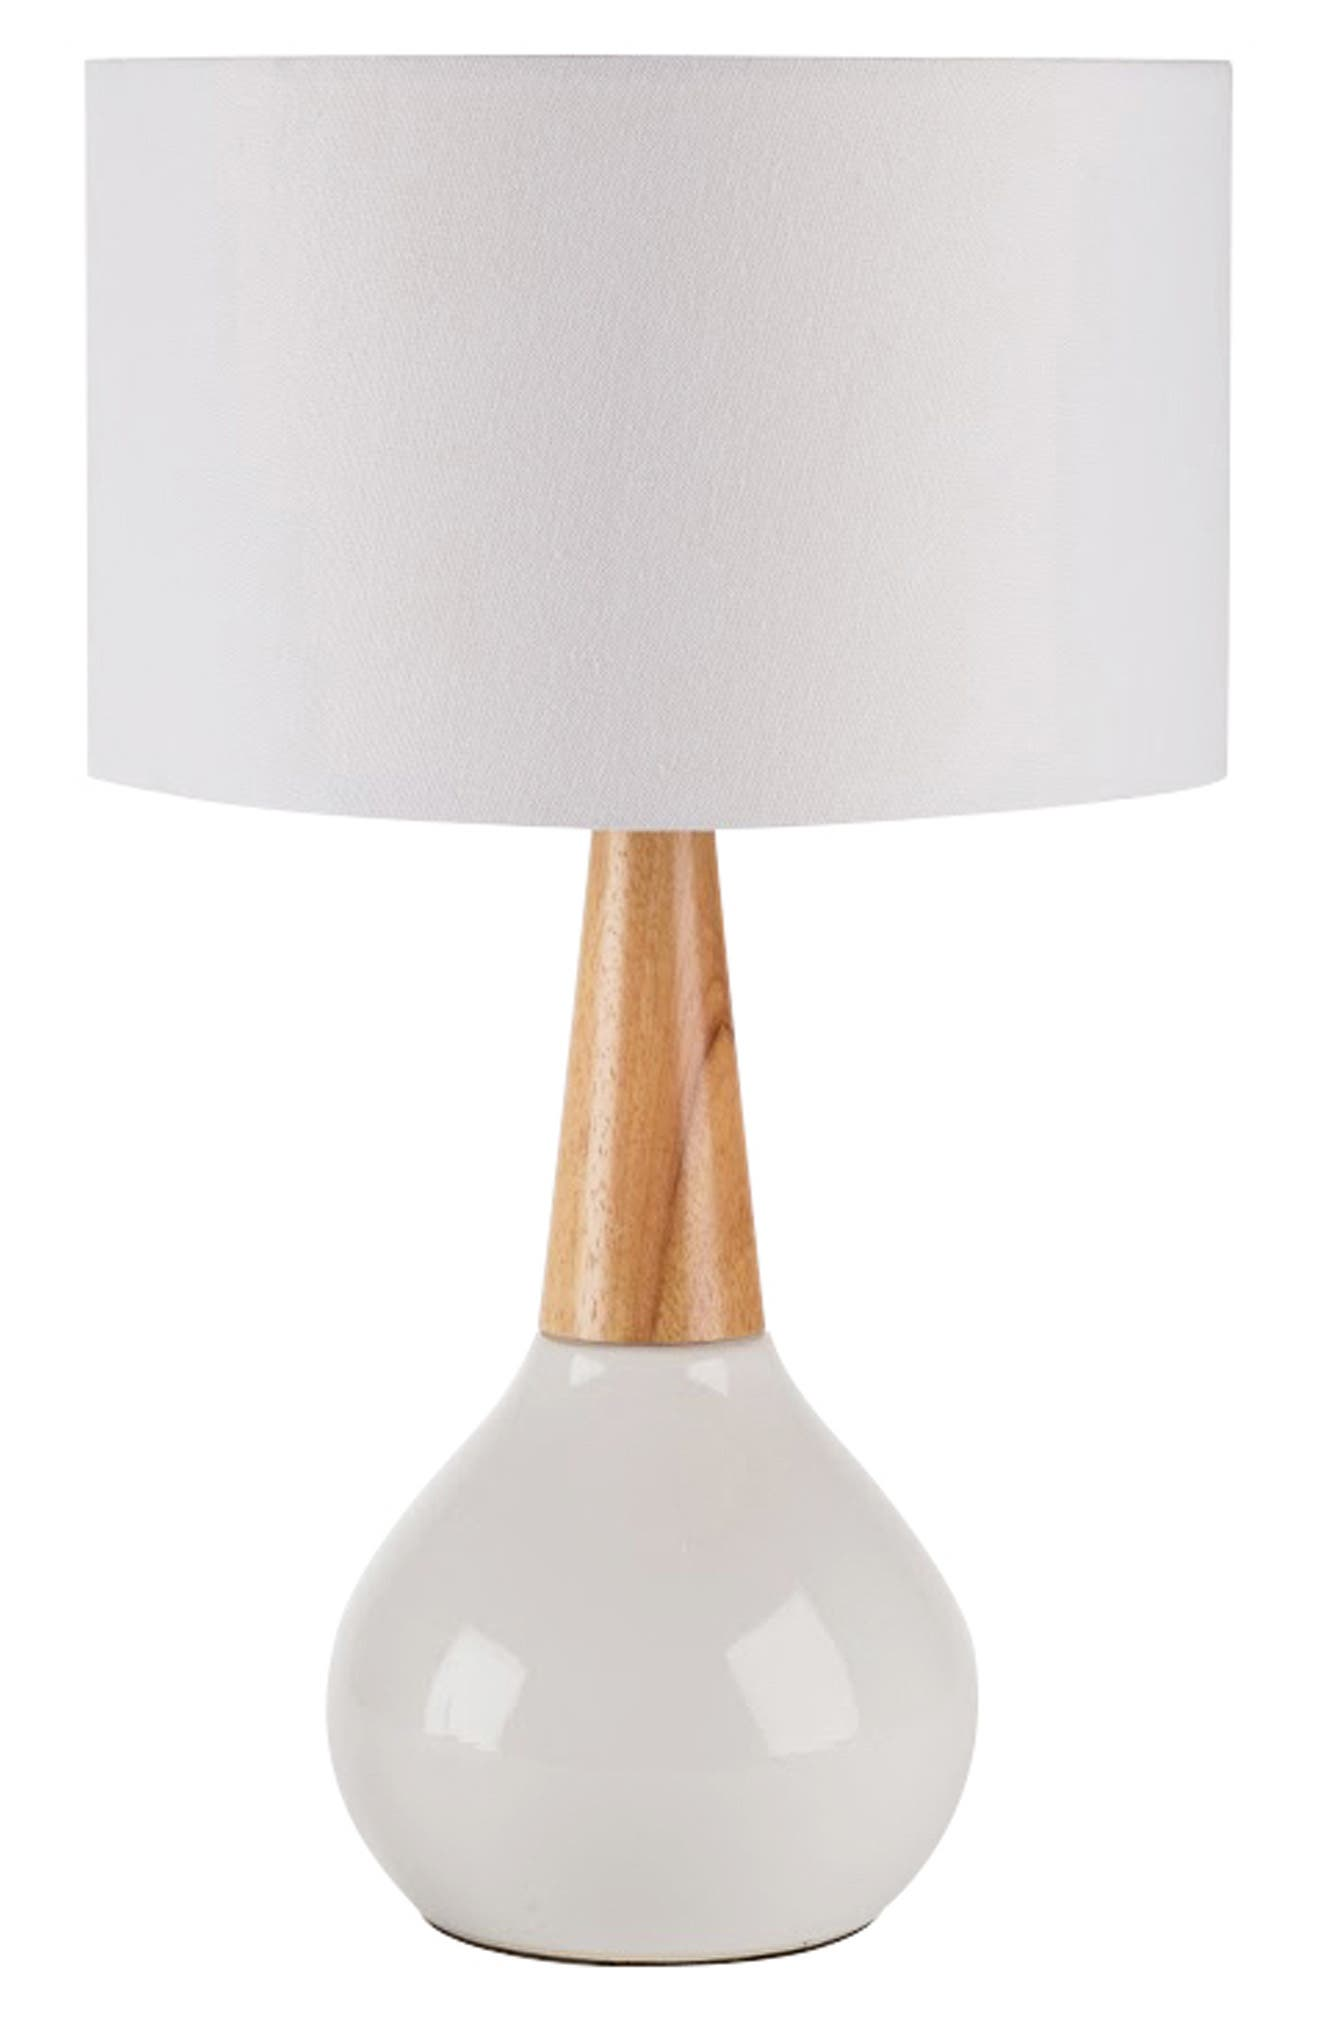 Surya Home Kent Table Lamp Size One Size  White